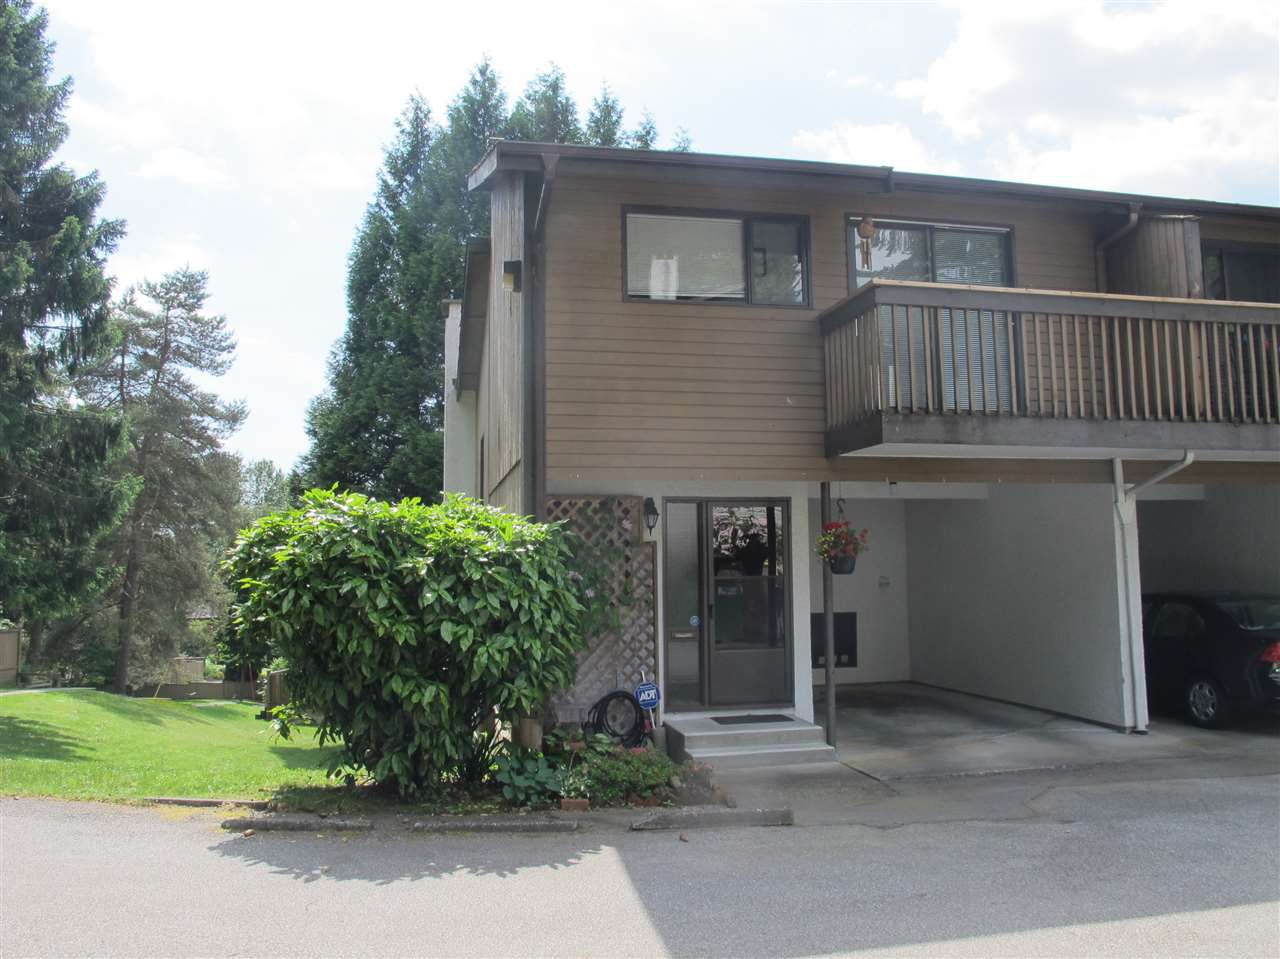 Main Photo: 2899 CORONA Drive in Burnaby: Simon Fraser Hills Townhouse for sale (Burnaby North)  : MLS®# R2182431